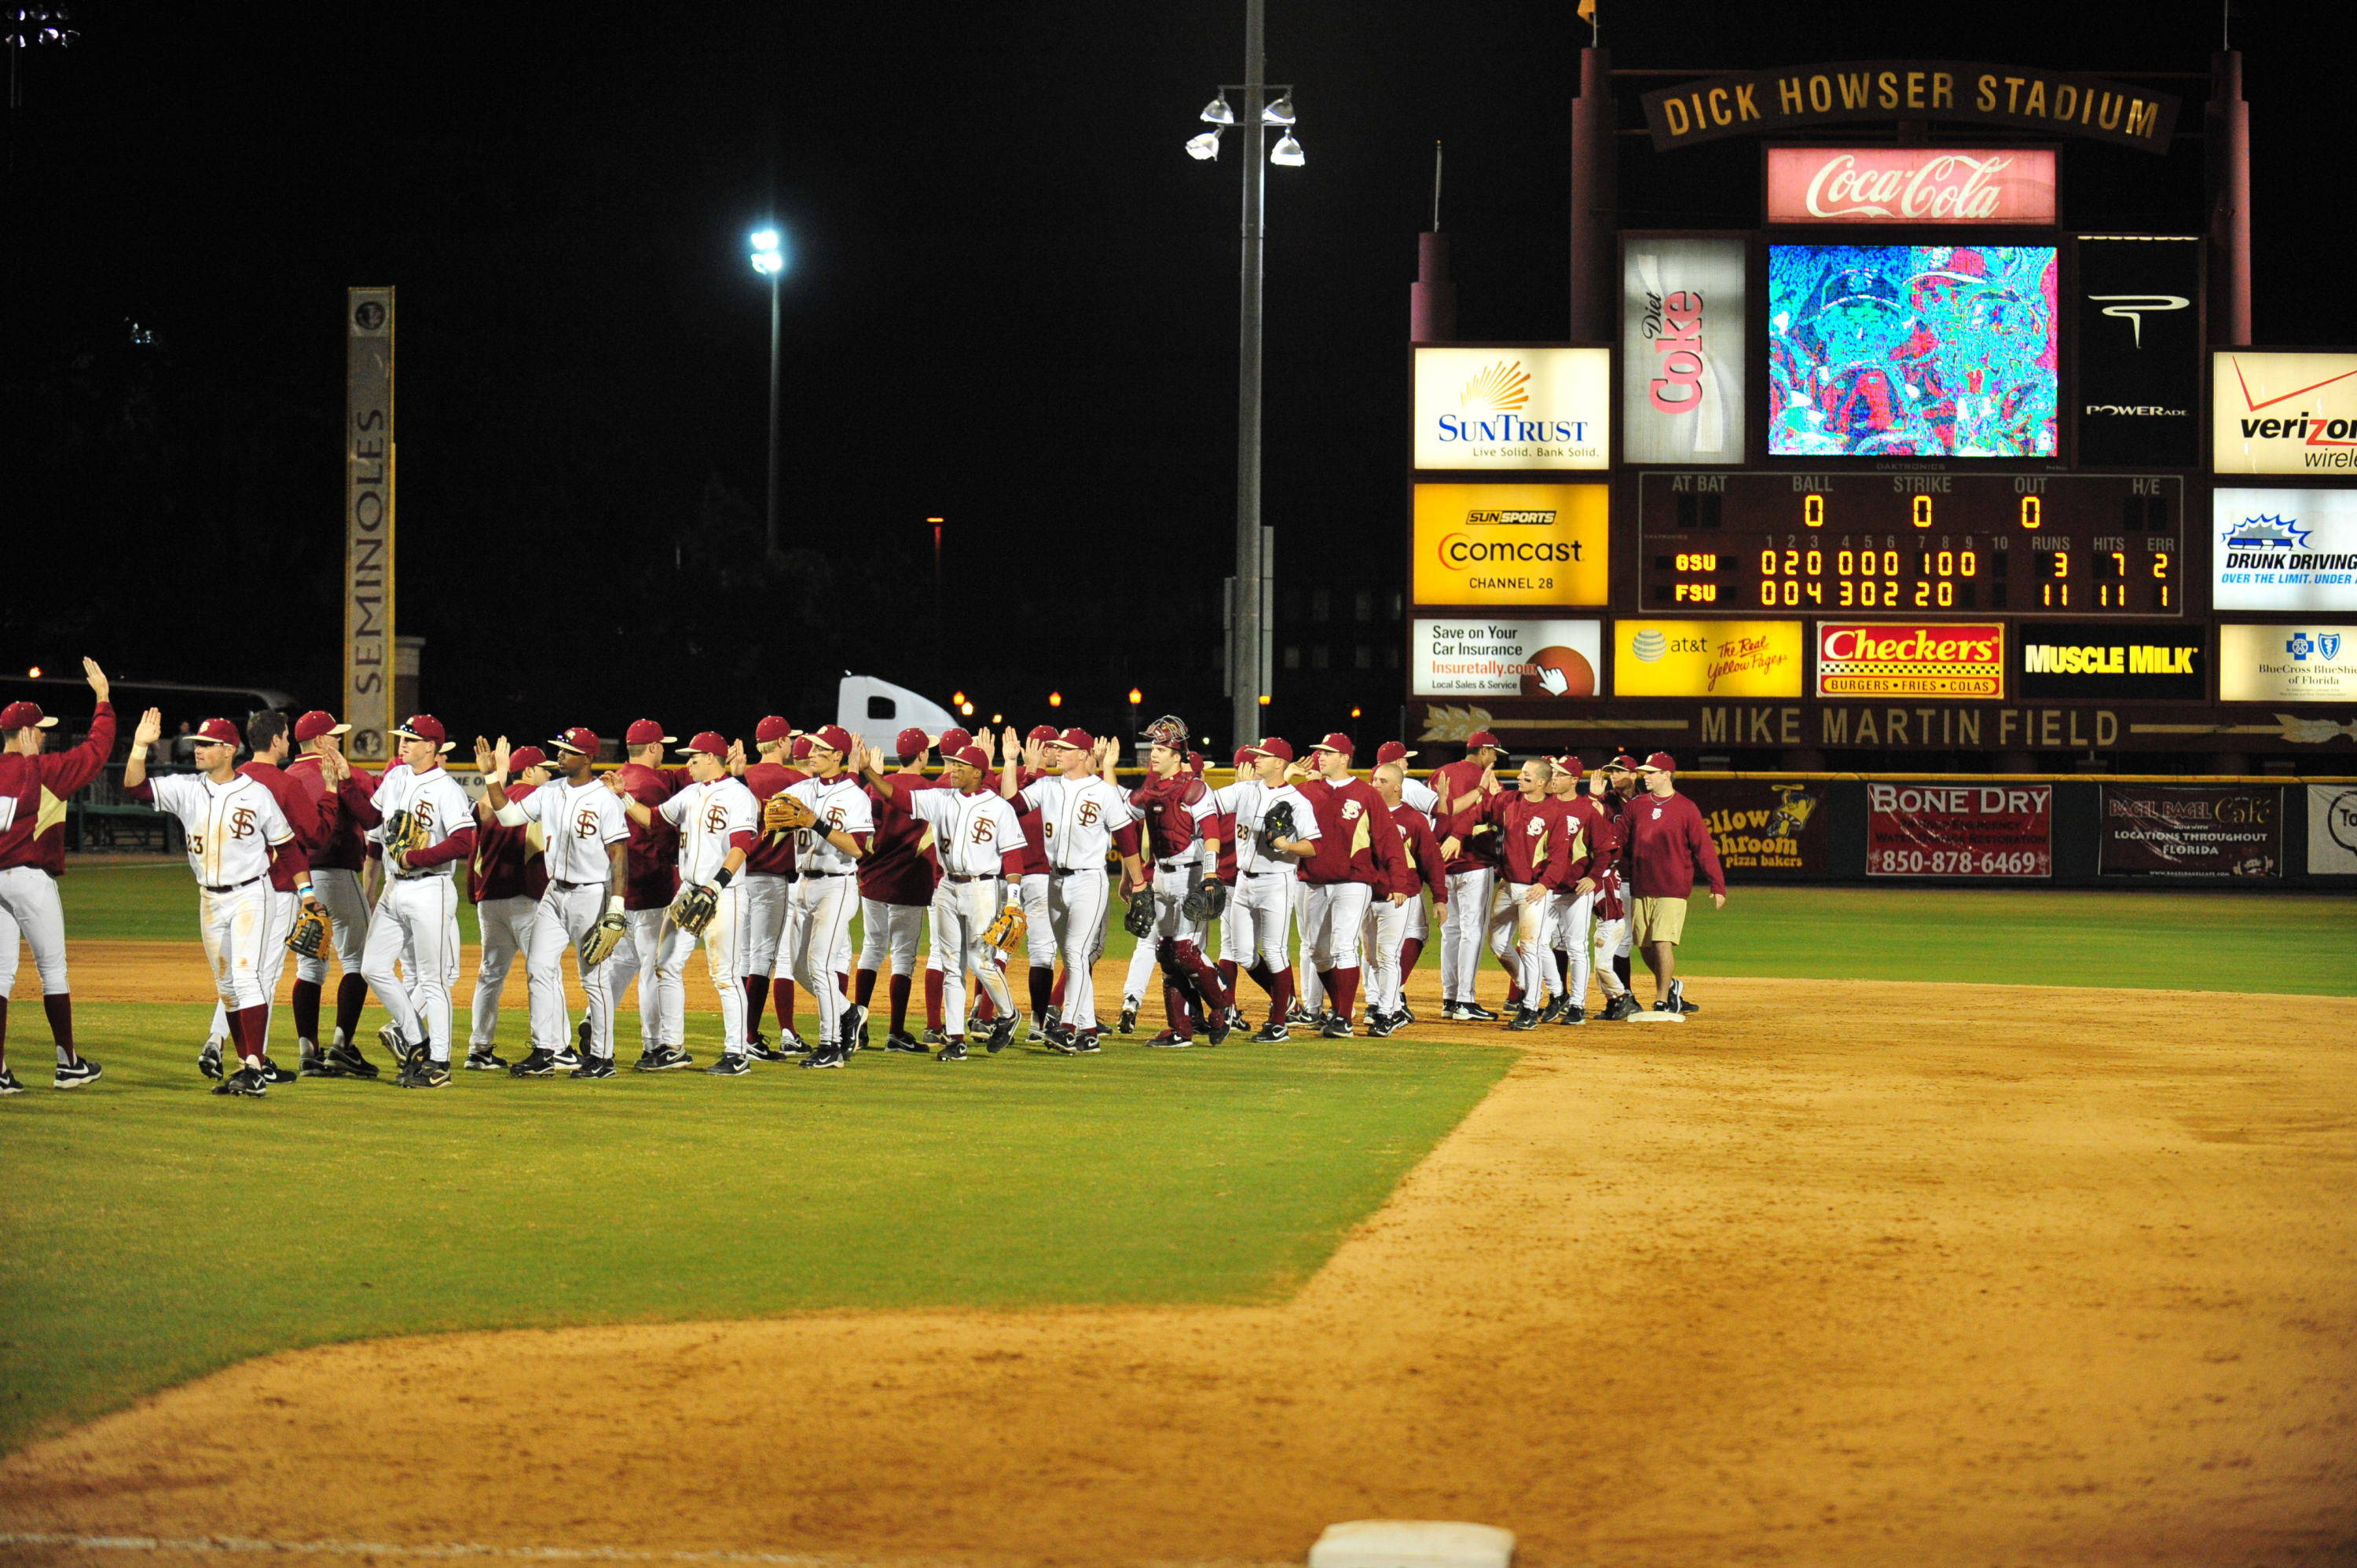 The Seminoles celebrate after an opening day victory over Georgia State.